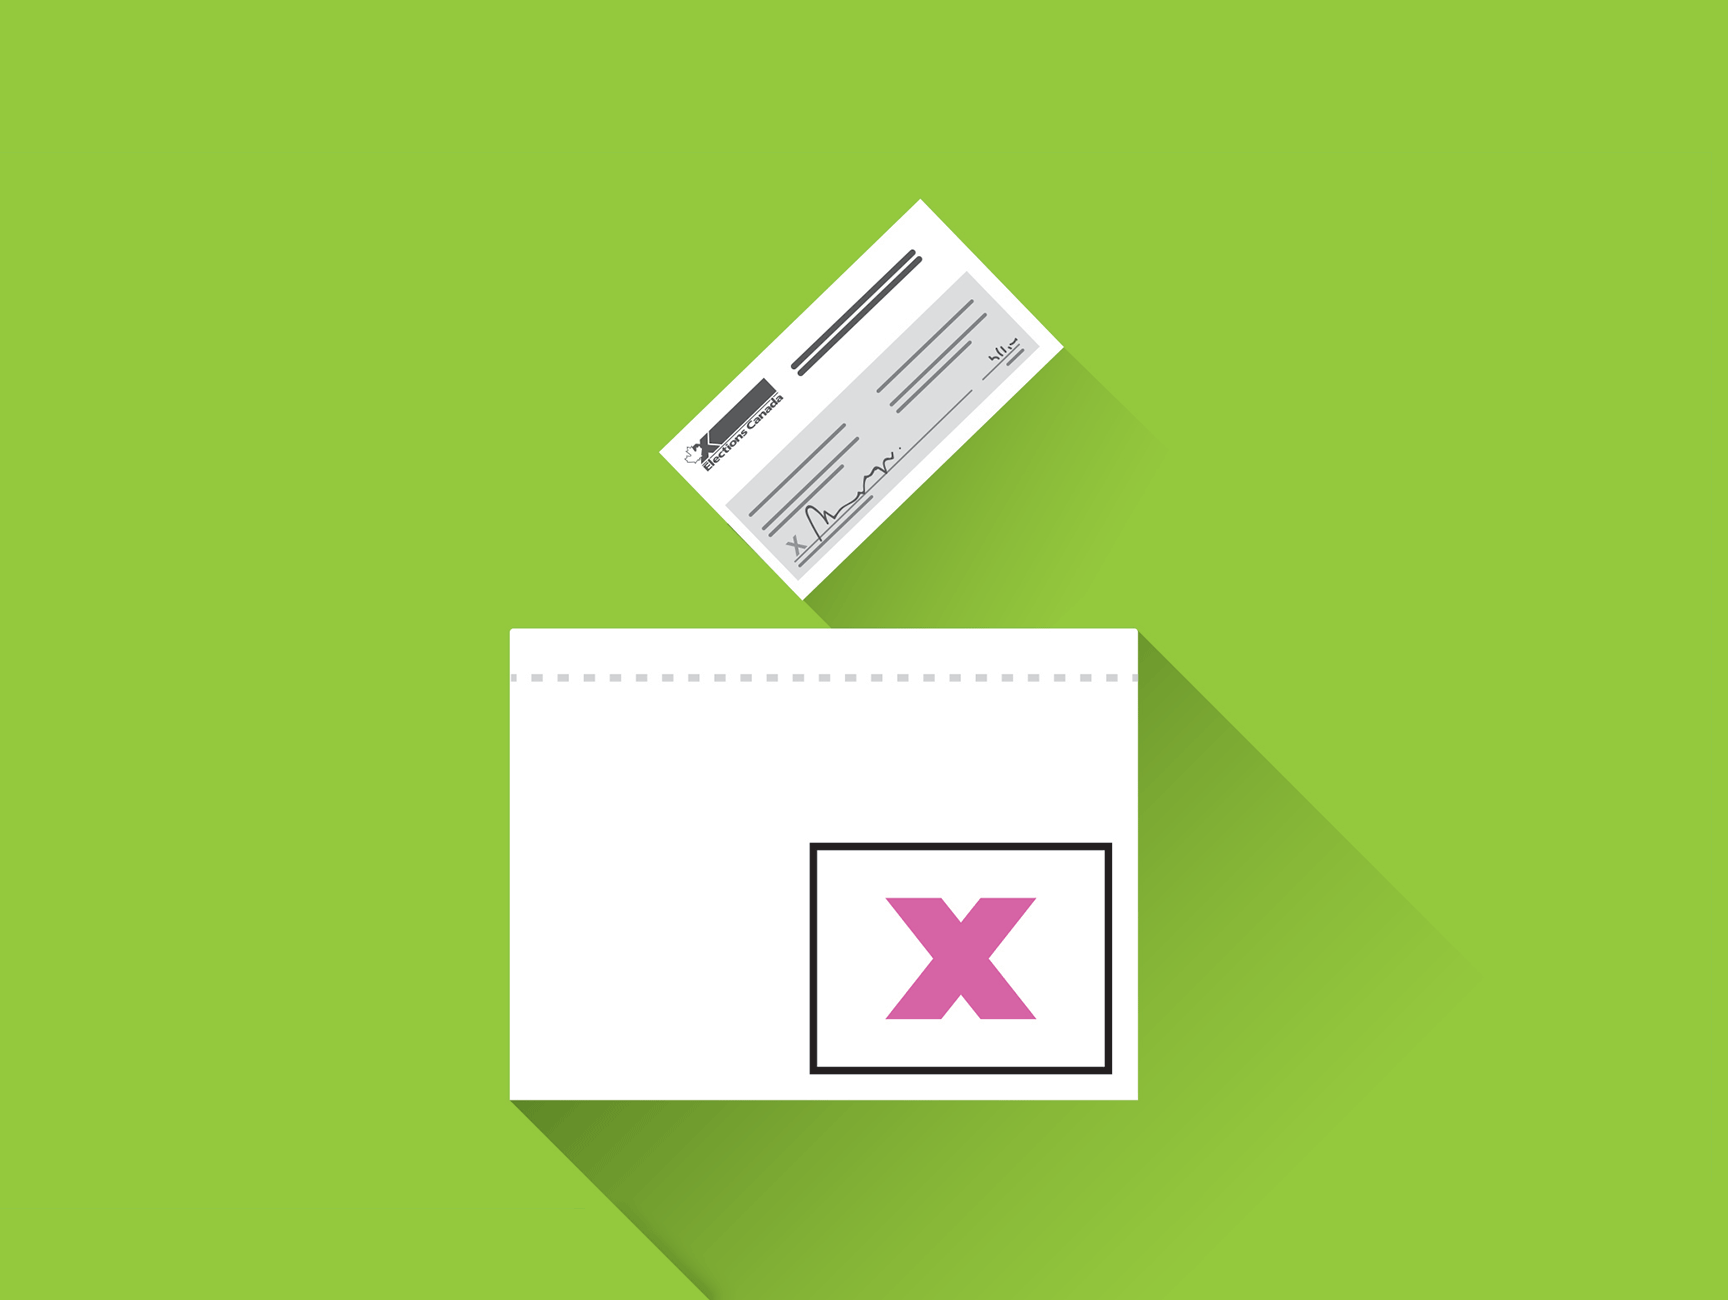 Illustration of a sealed voting envelope being cast into a ballot box